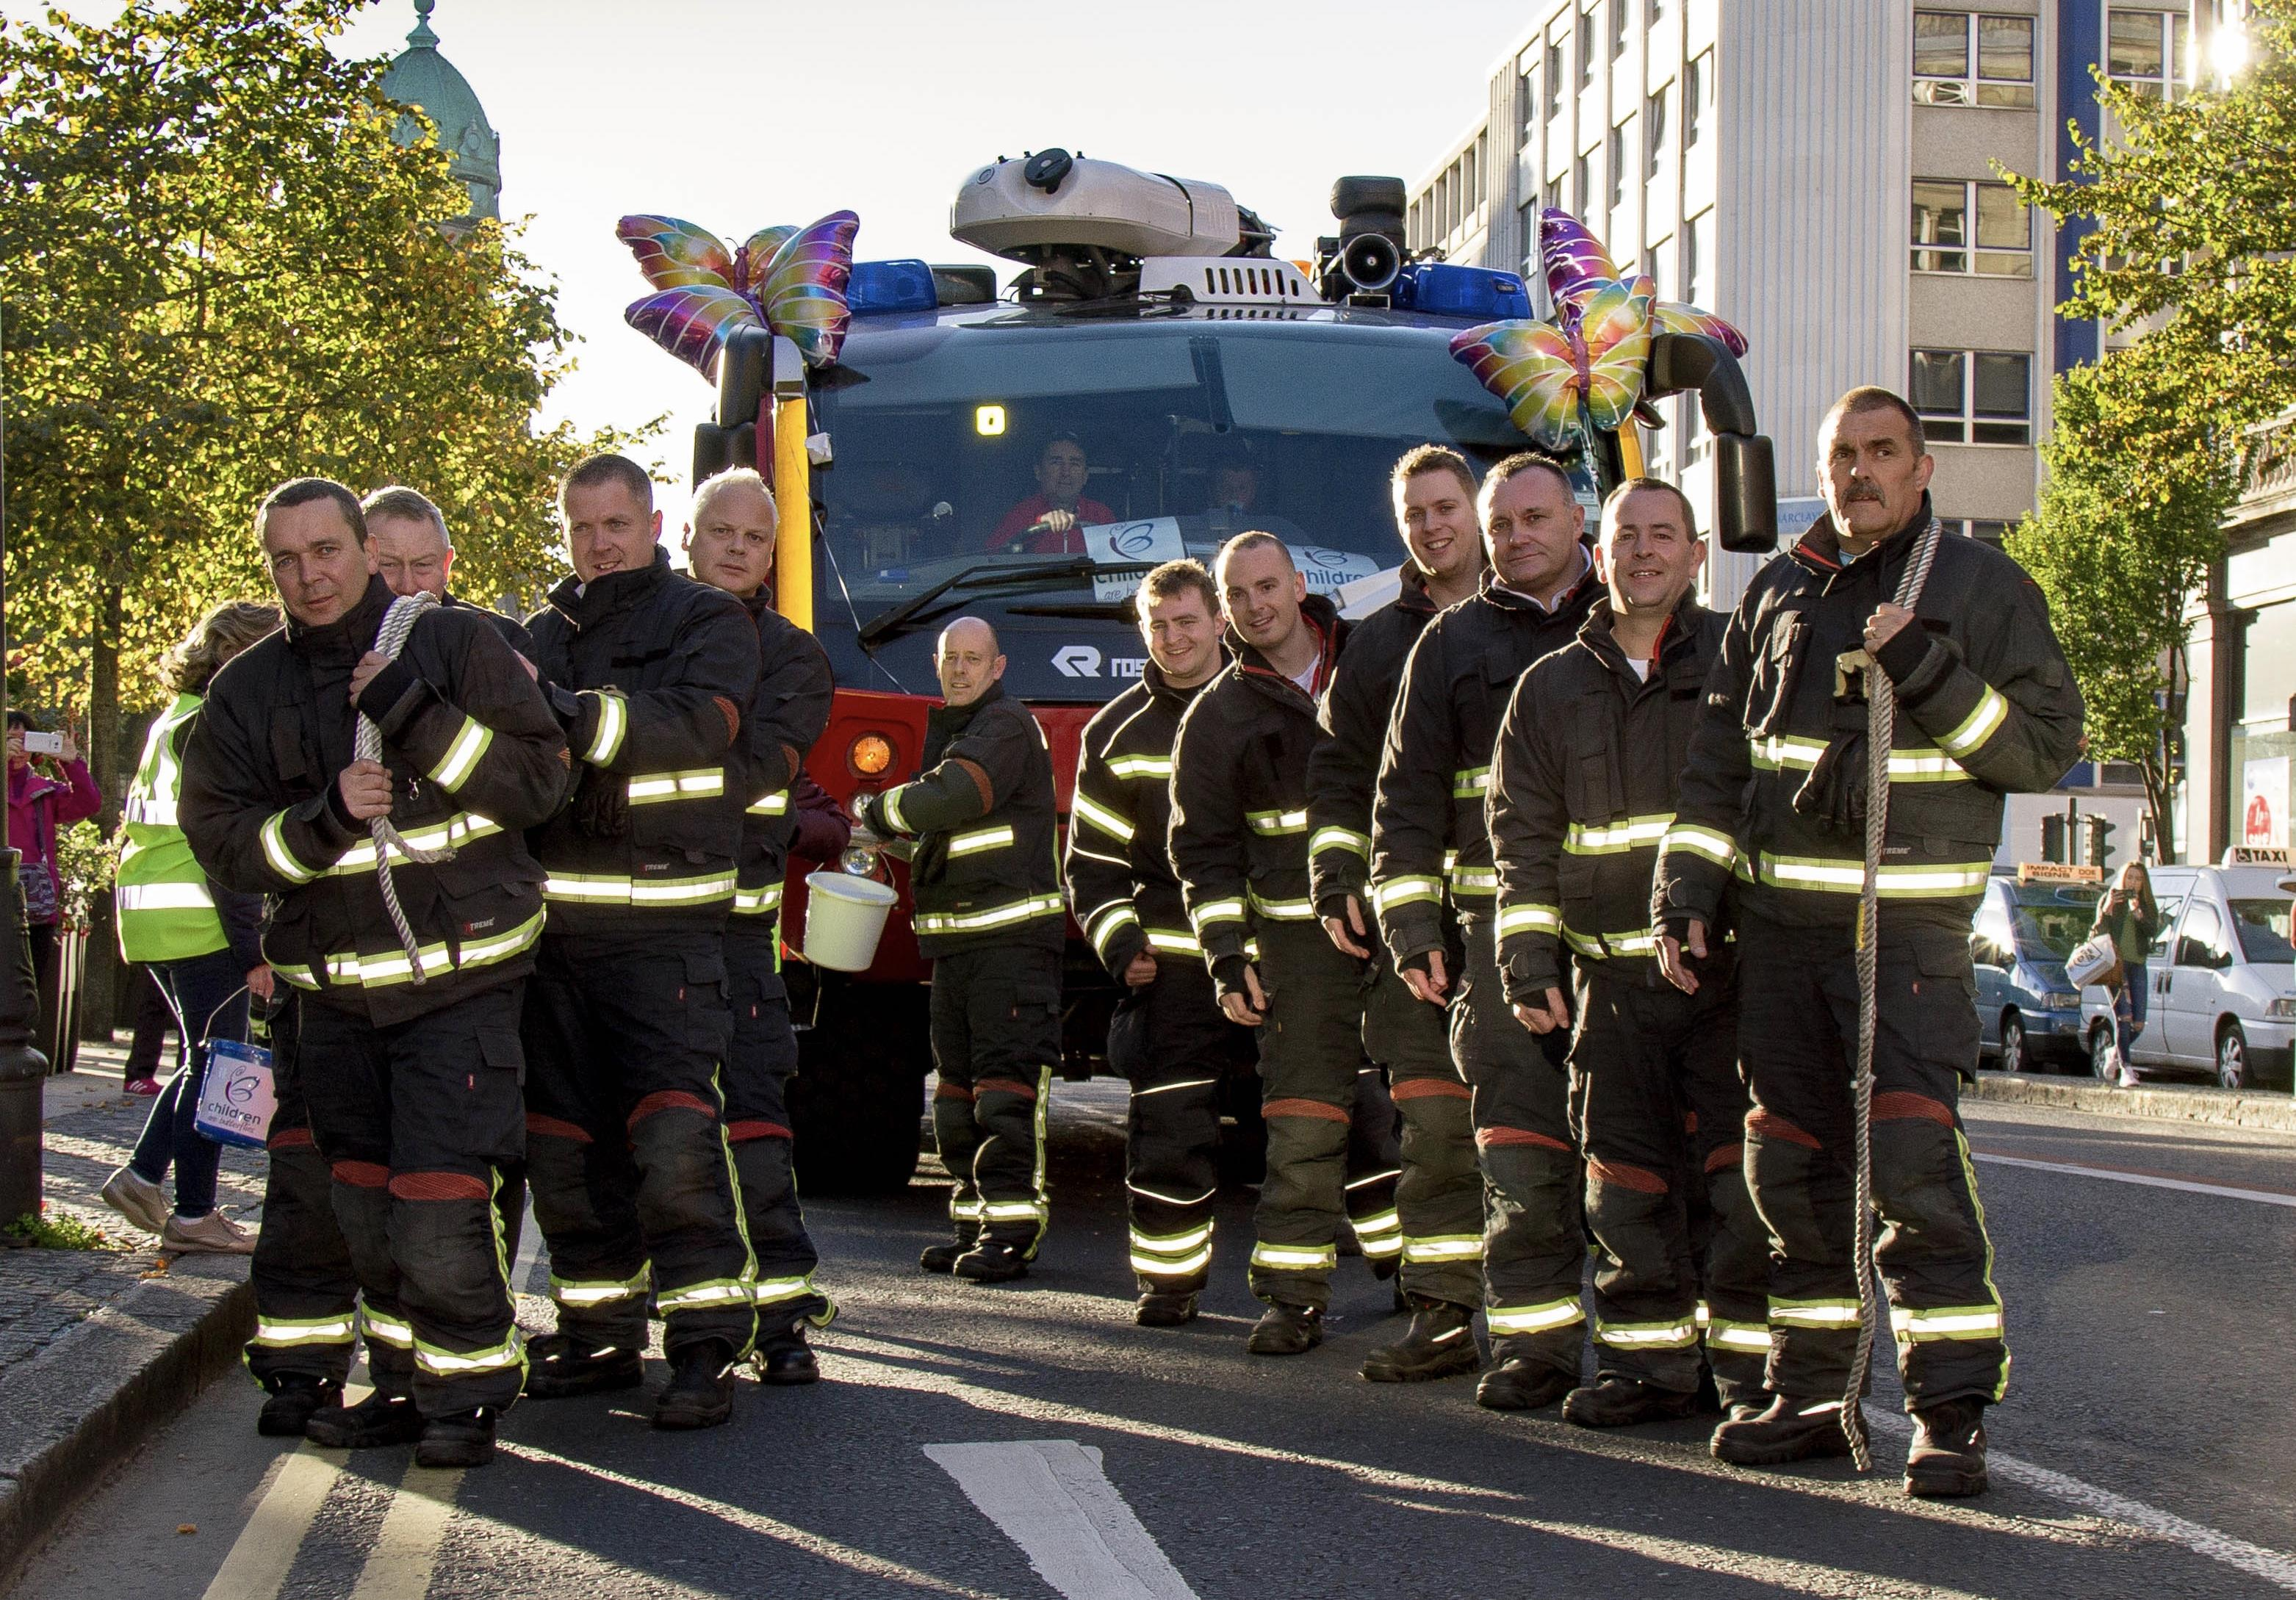 Belfast International Firefighters prove their 'pulling power' raising £4,500 for charity